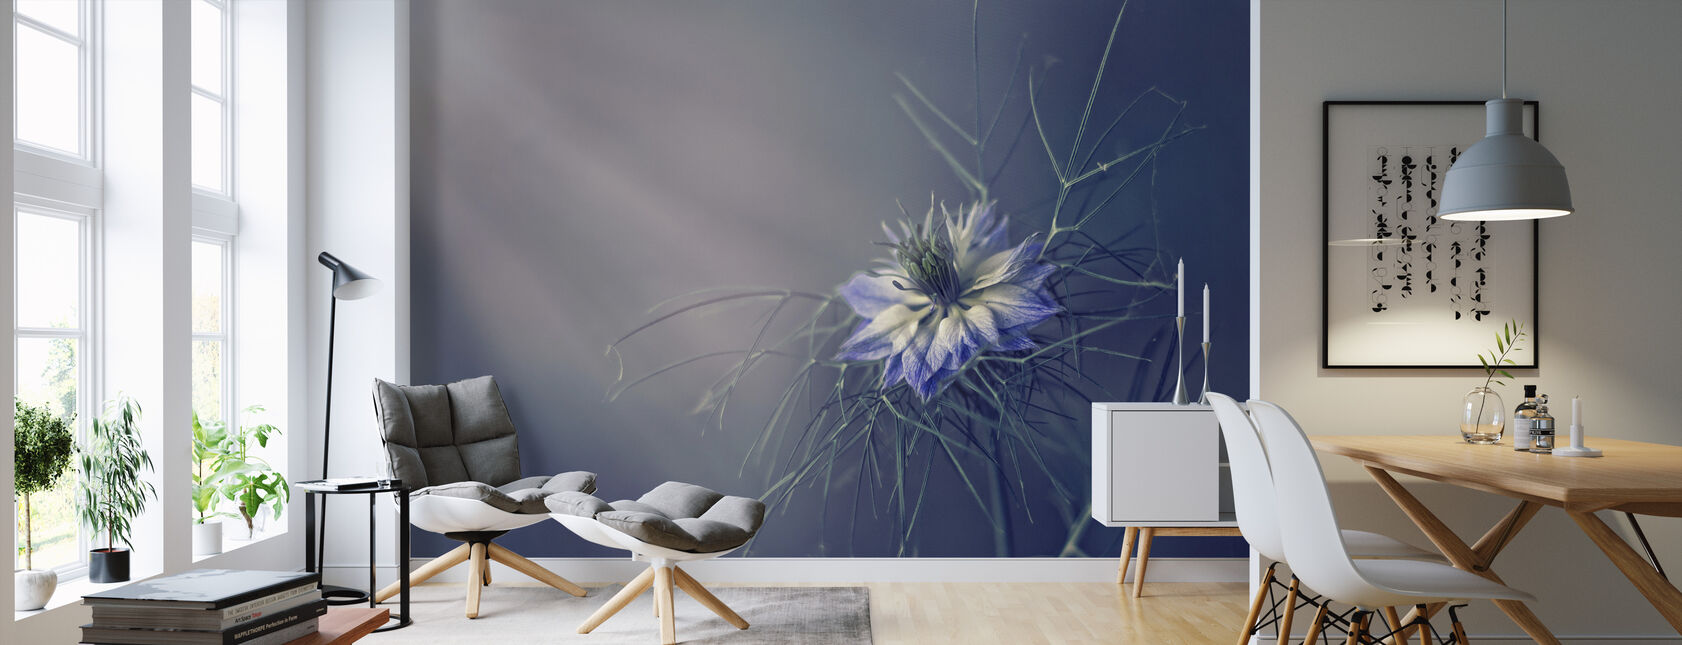 Prickly Blue - Wallpaper - Living Room